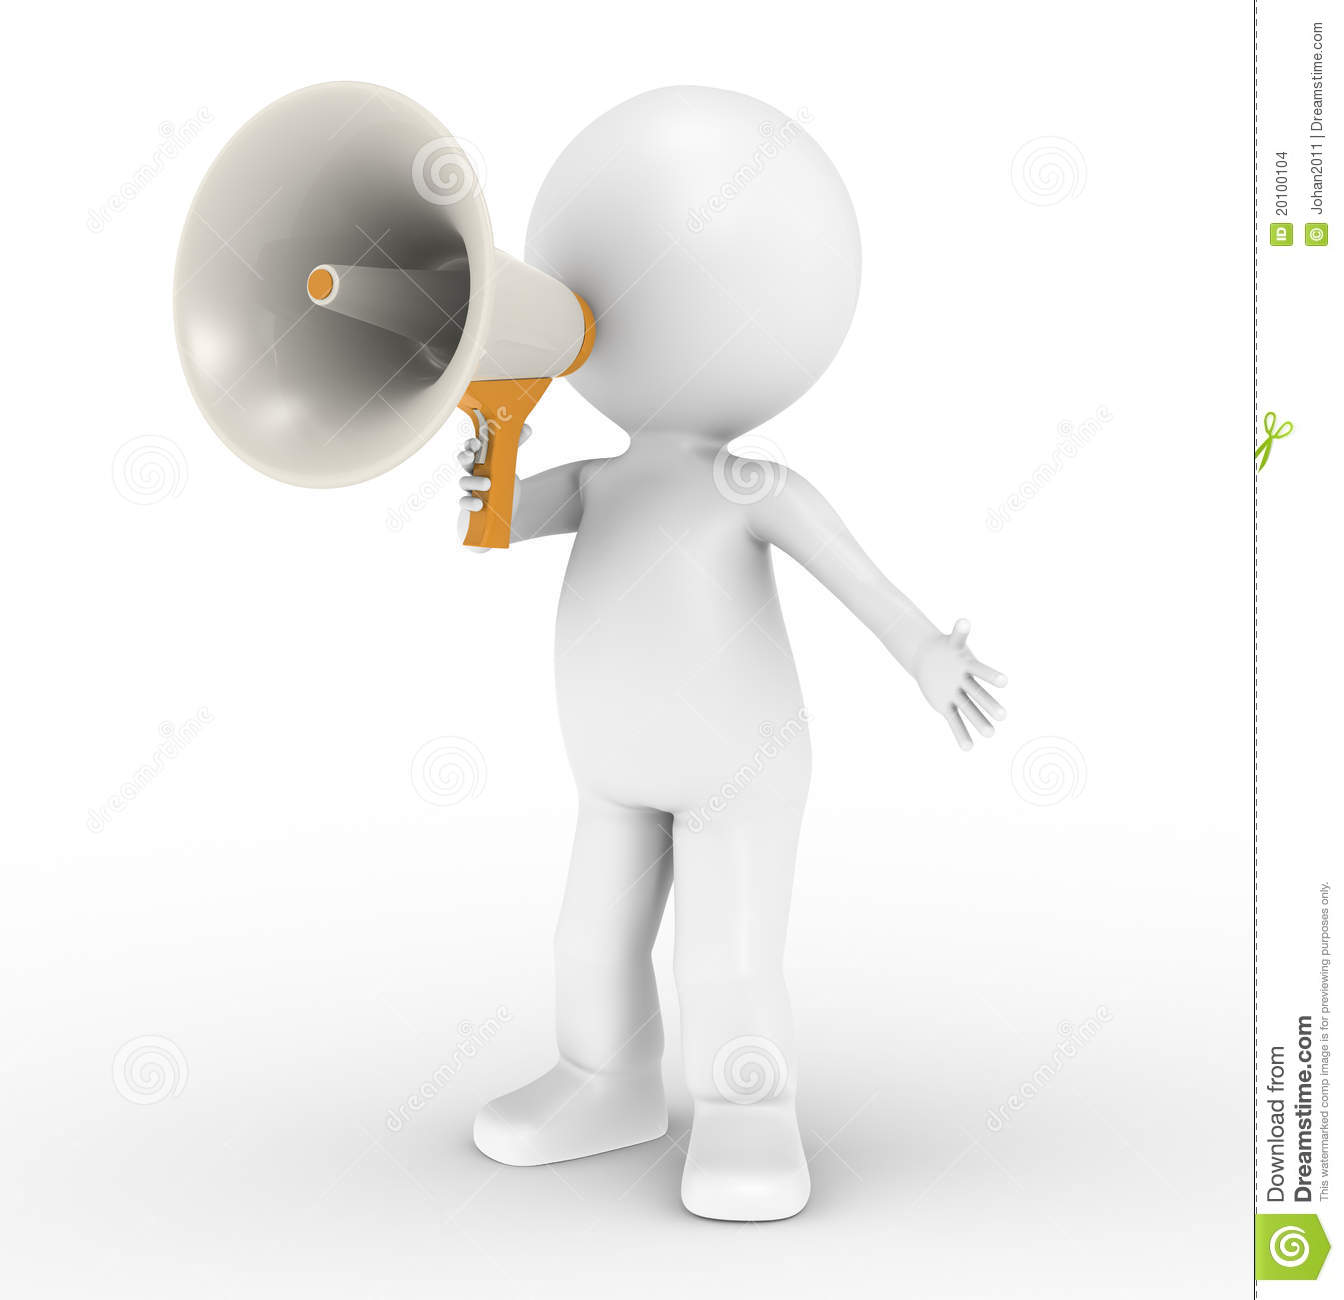 3d Human Character With Megaphone Stock Images - Image: 20100104